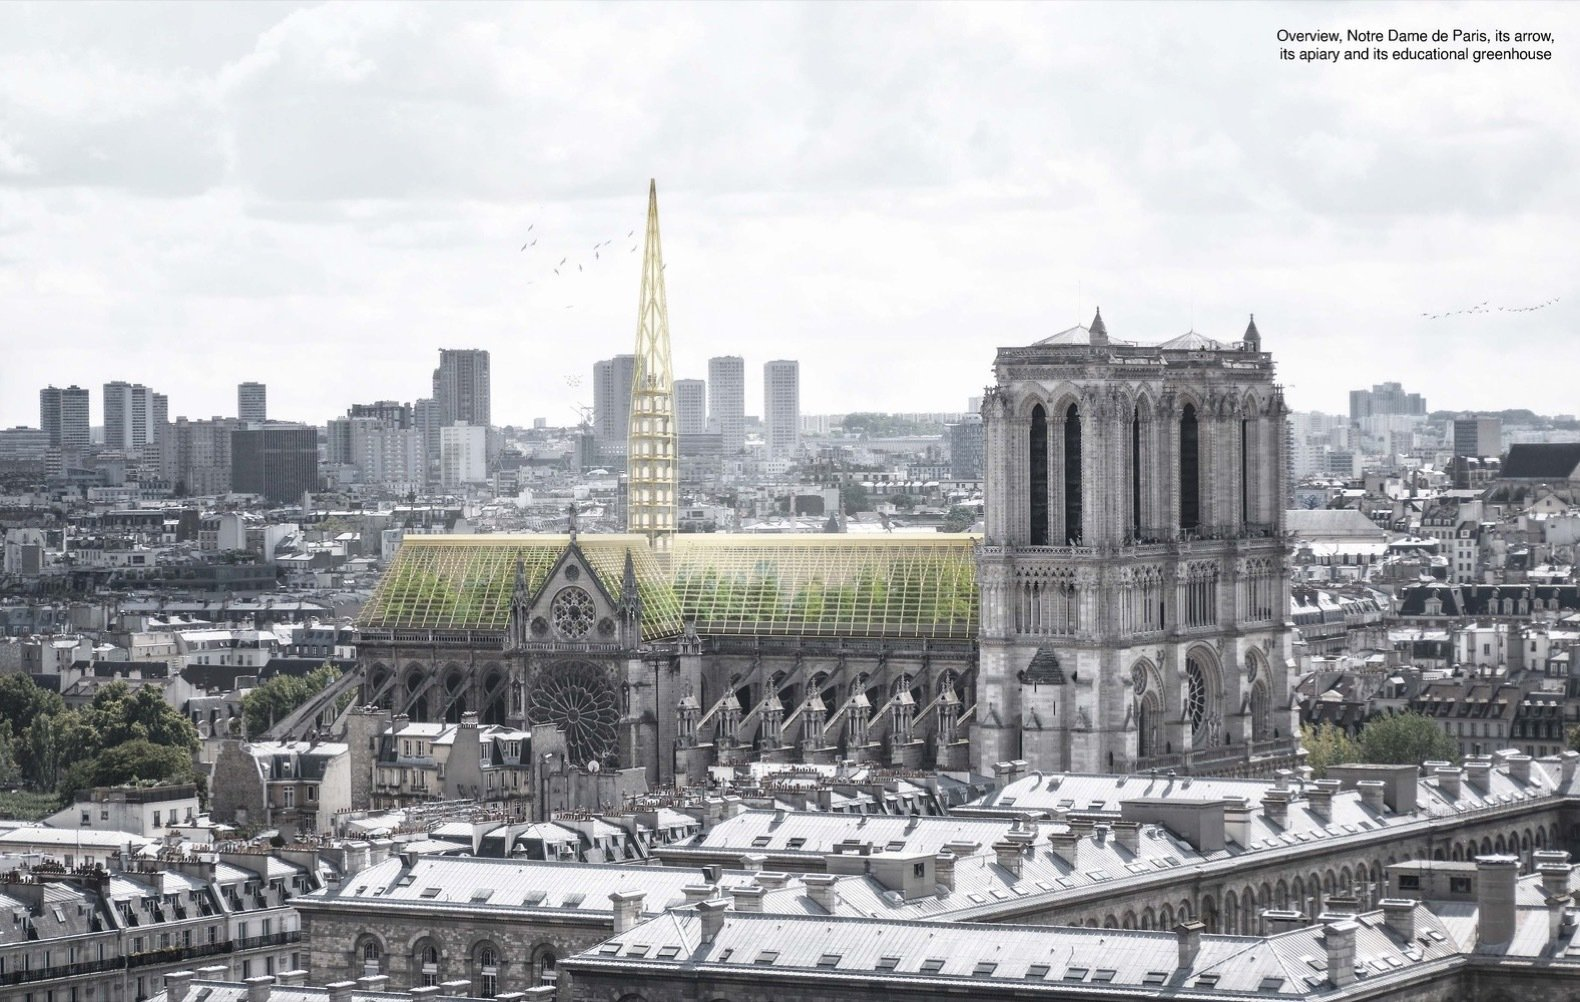 8 New Spire Designs That Could Crown the Notre Dame Cathedral